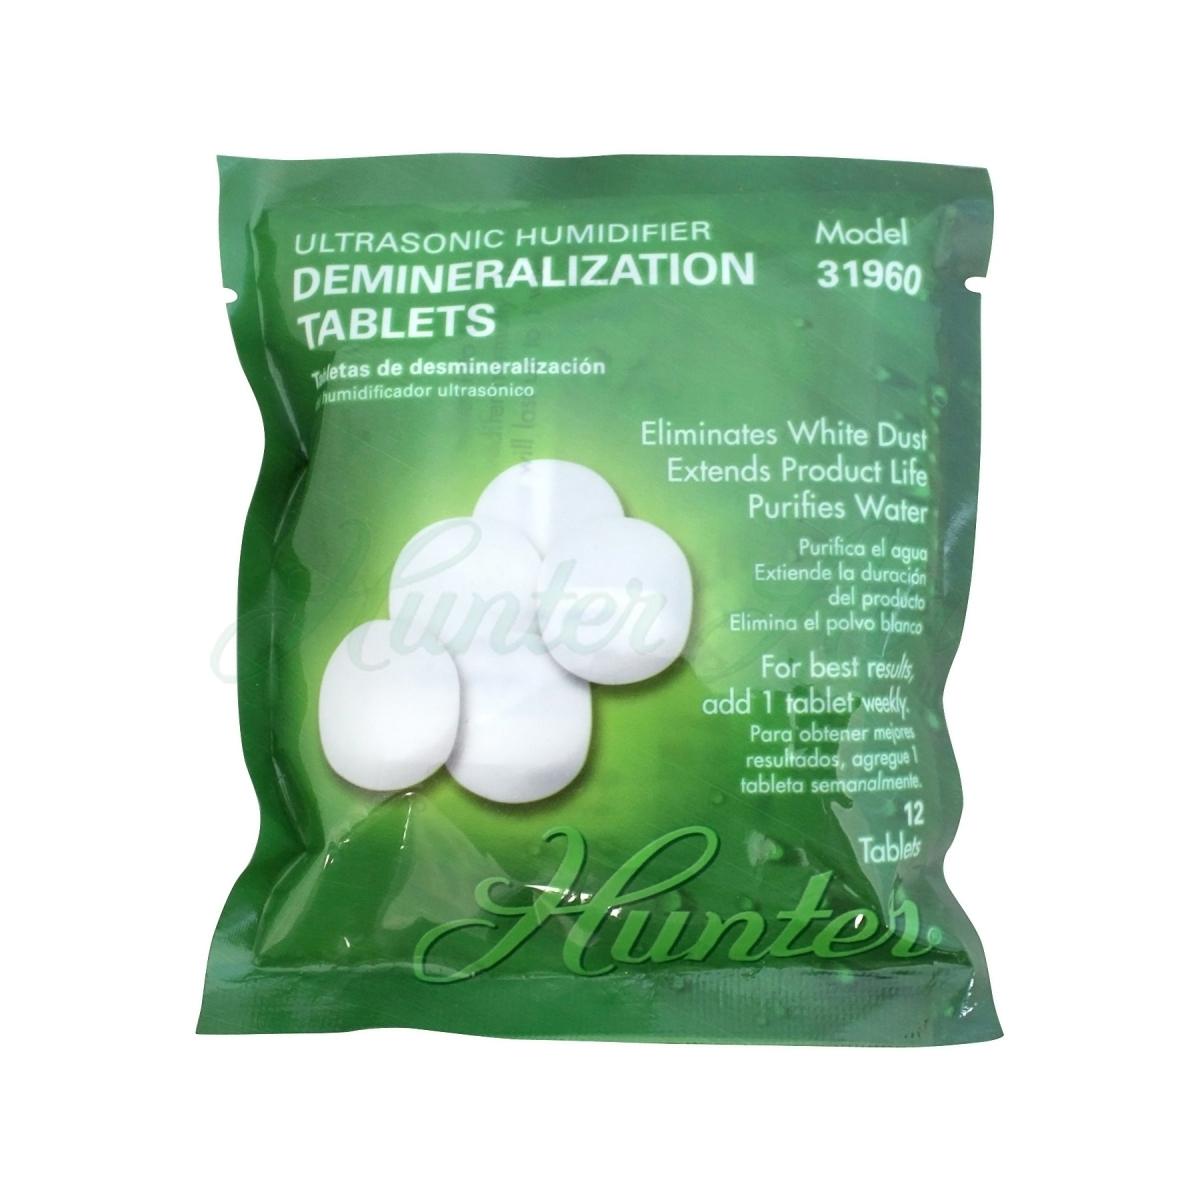 Hunter Ultrasonic Humidifier Demineralization Tablets 12 Pack (31960) #18491A